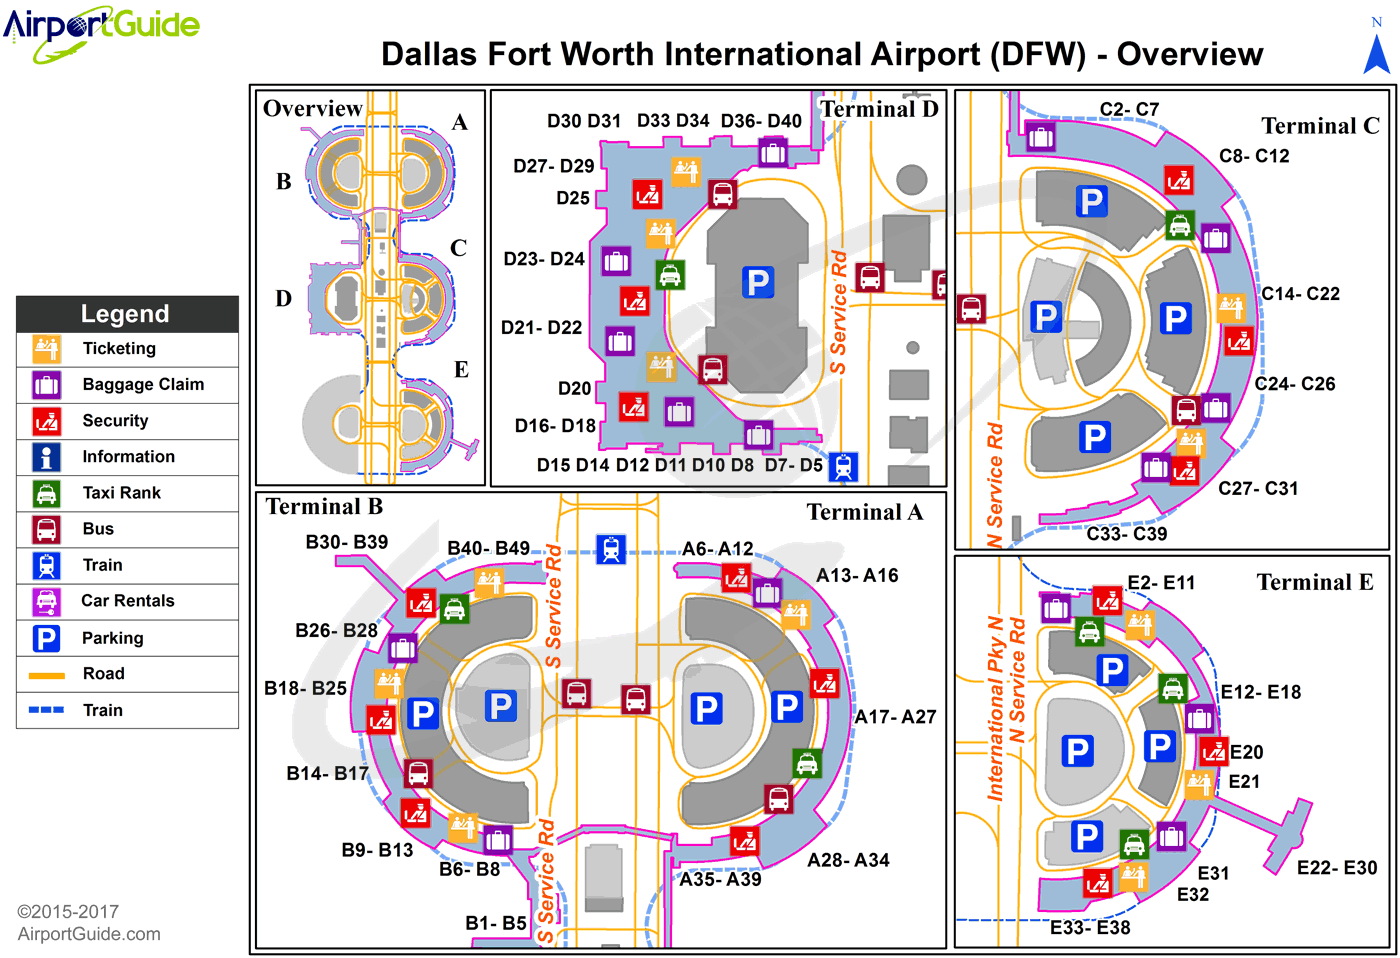 dfw airport guide map Dallas Fort Worth Dallas Fort Worth International Dfw Airport dfw airport guide map